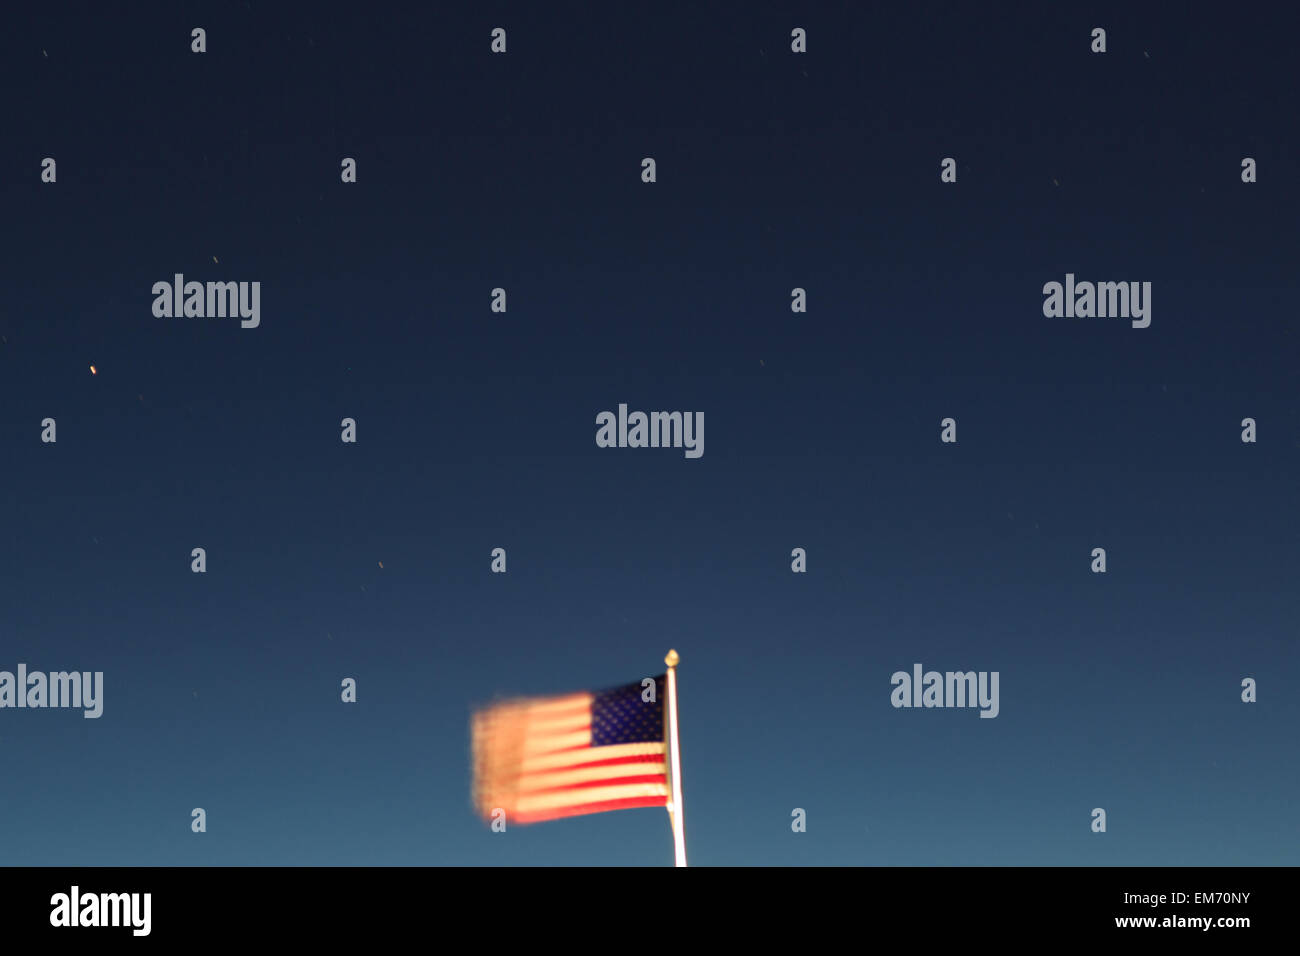 A photograph of an American flag blowing in the wind. The photograph was taken at night time with a long exposure. Stock Photo